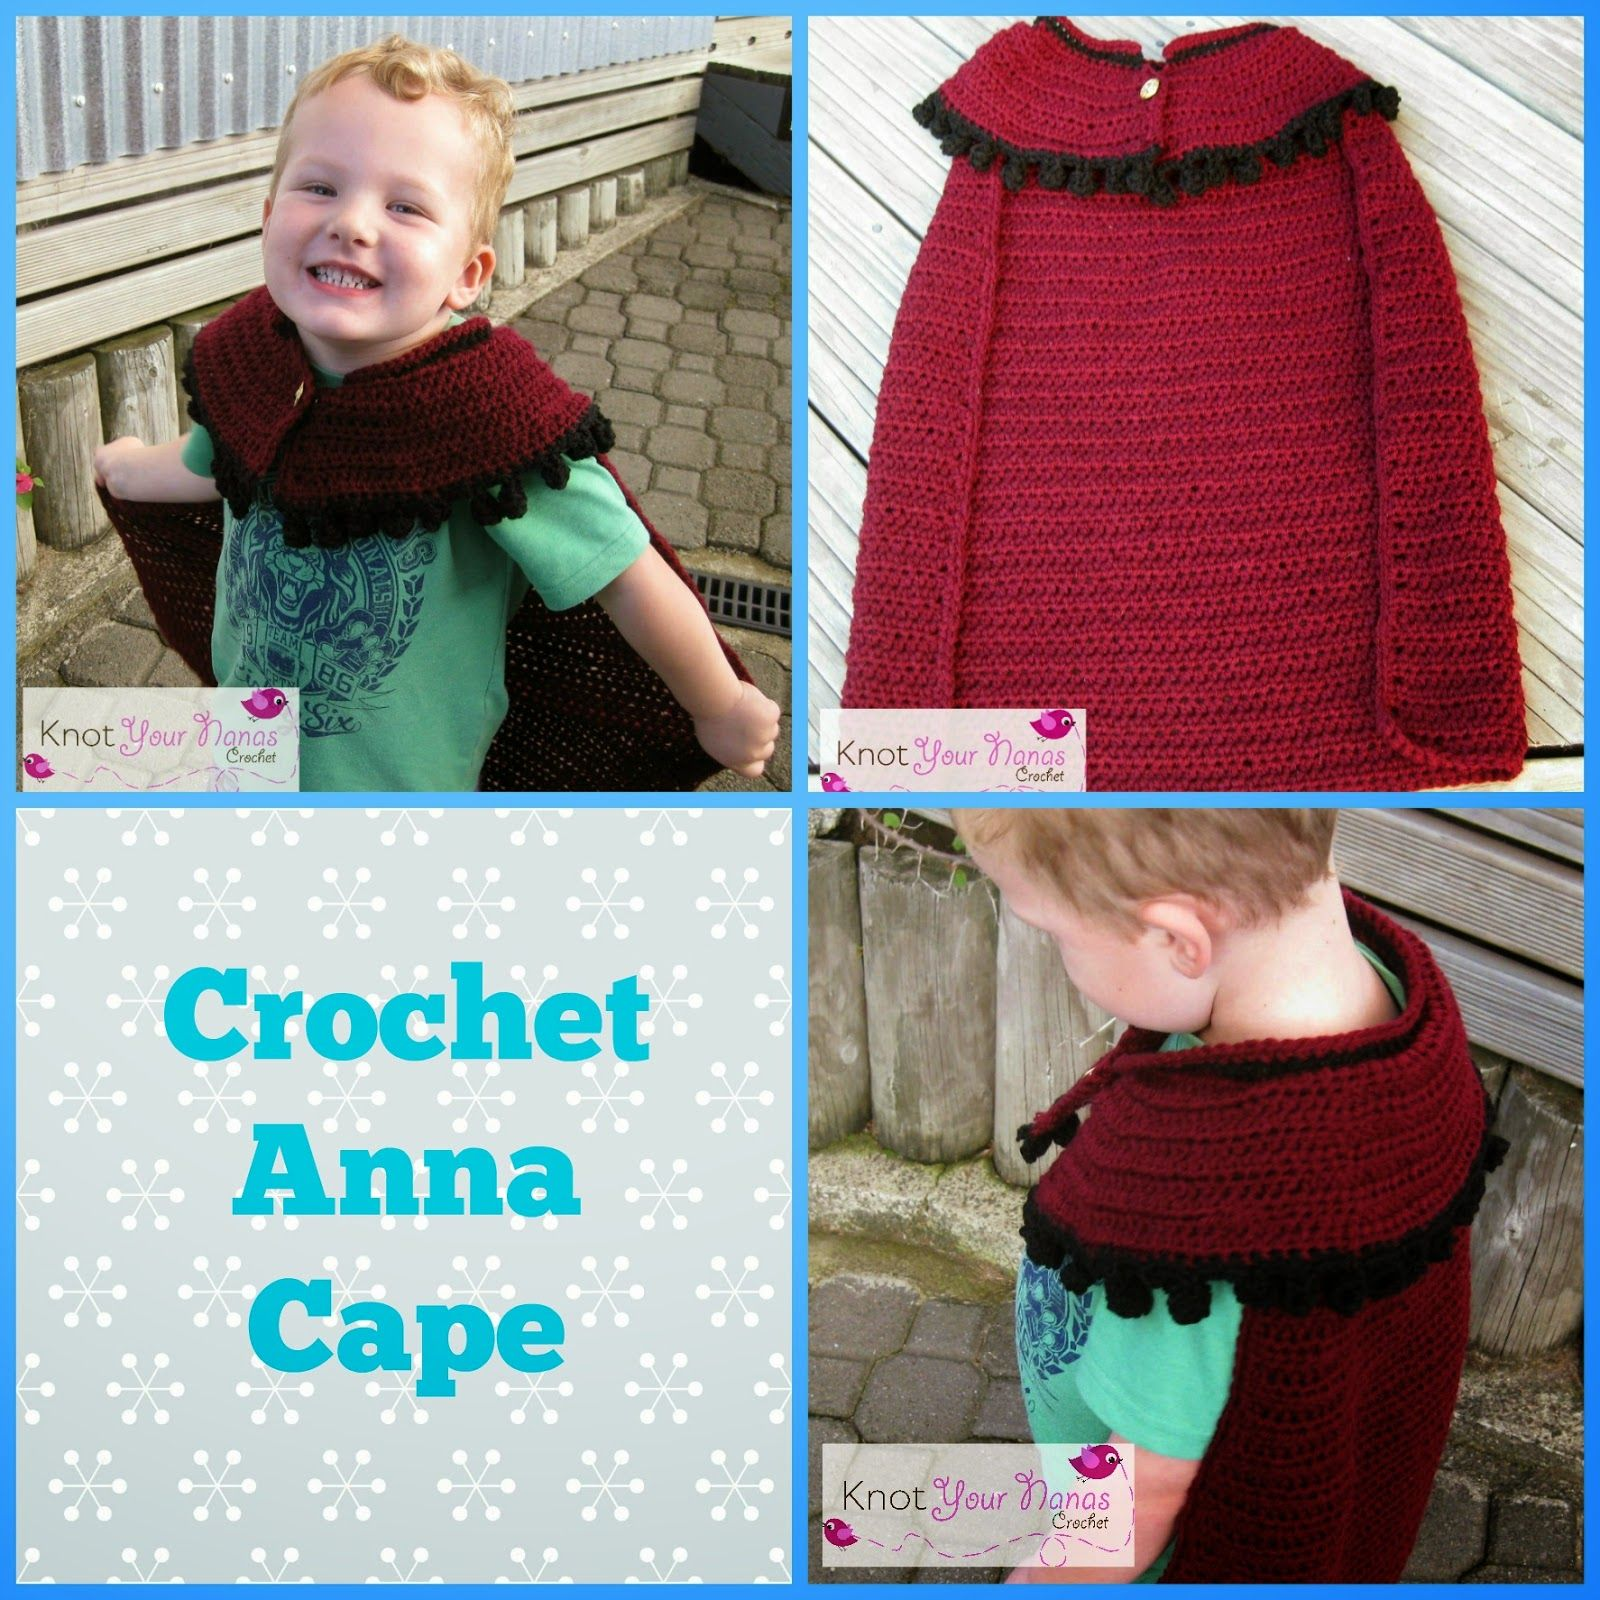 Frozen crochet pattern lots of great ideas youll love anna cape frozen crochet pattern lots of great ideas youll love bankloansurffo Choice Image